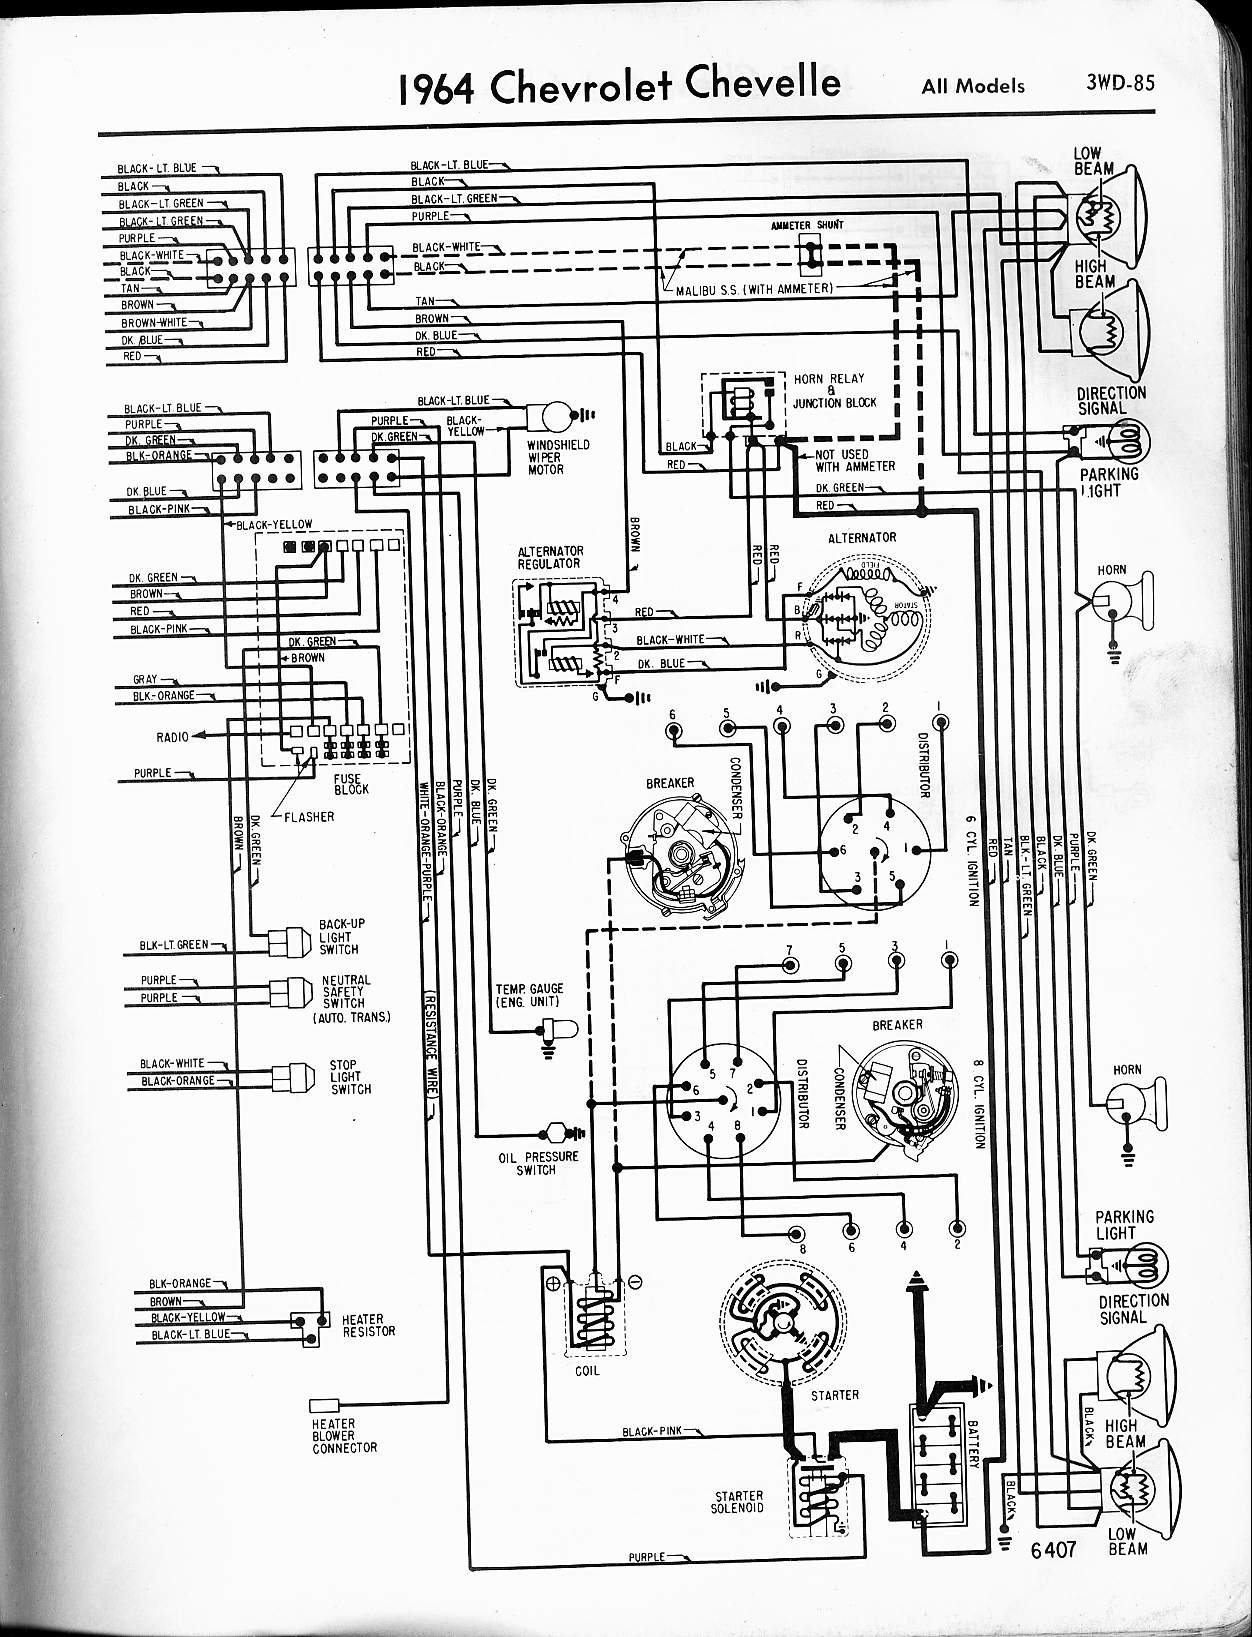 chevy diagrams rh wiring wizard com 1964 chevy c10 wiring diagram 1964 chevy c10 wiring diagram